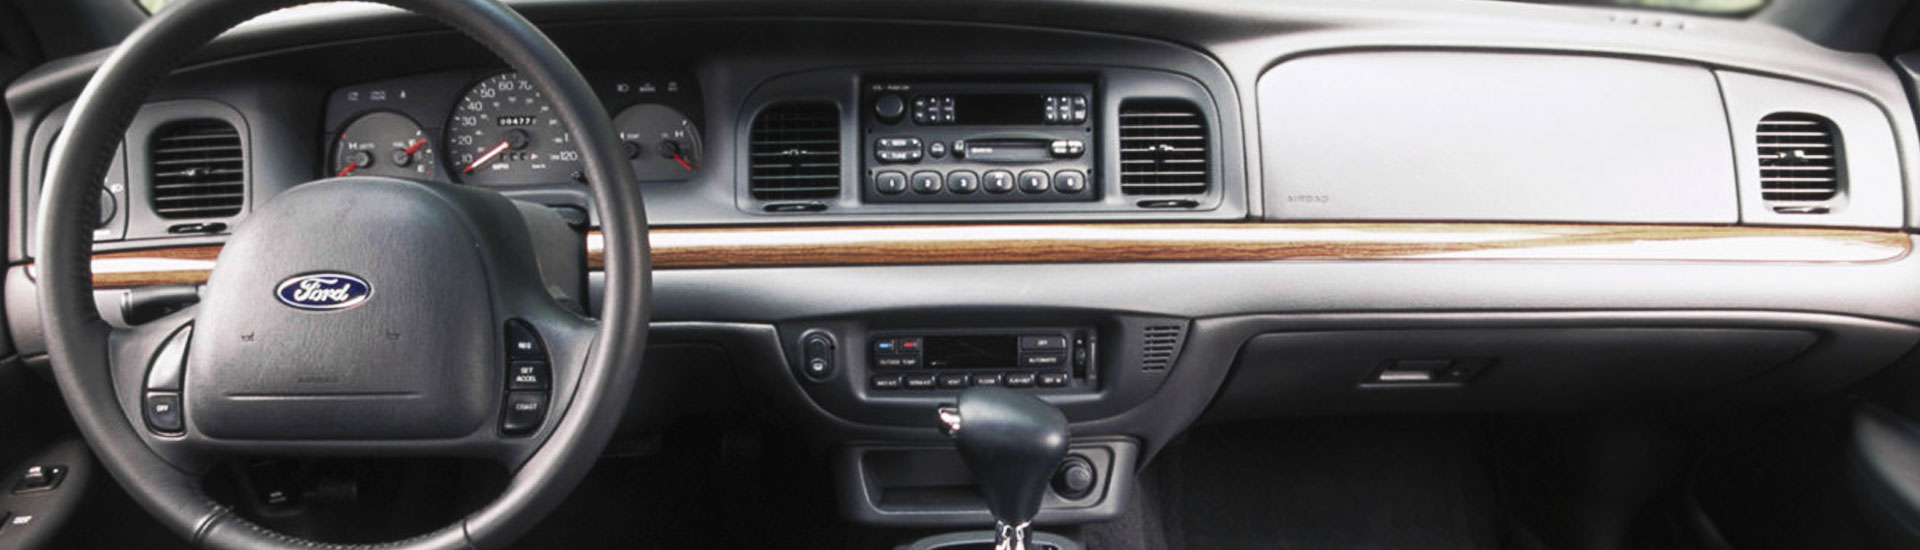 Ford Crown Victoria Custom Dash Kits